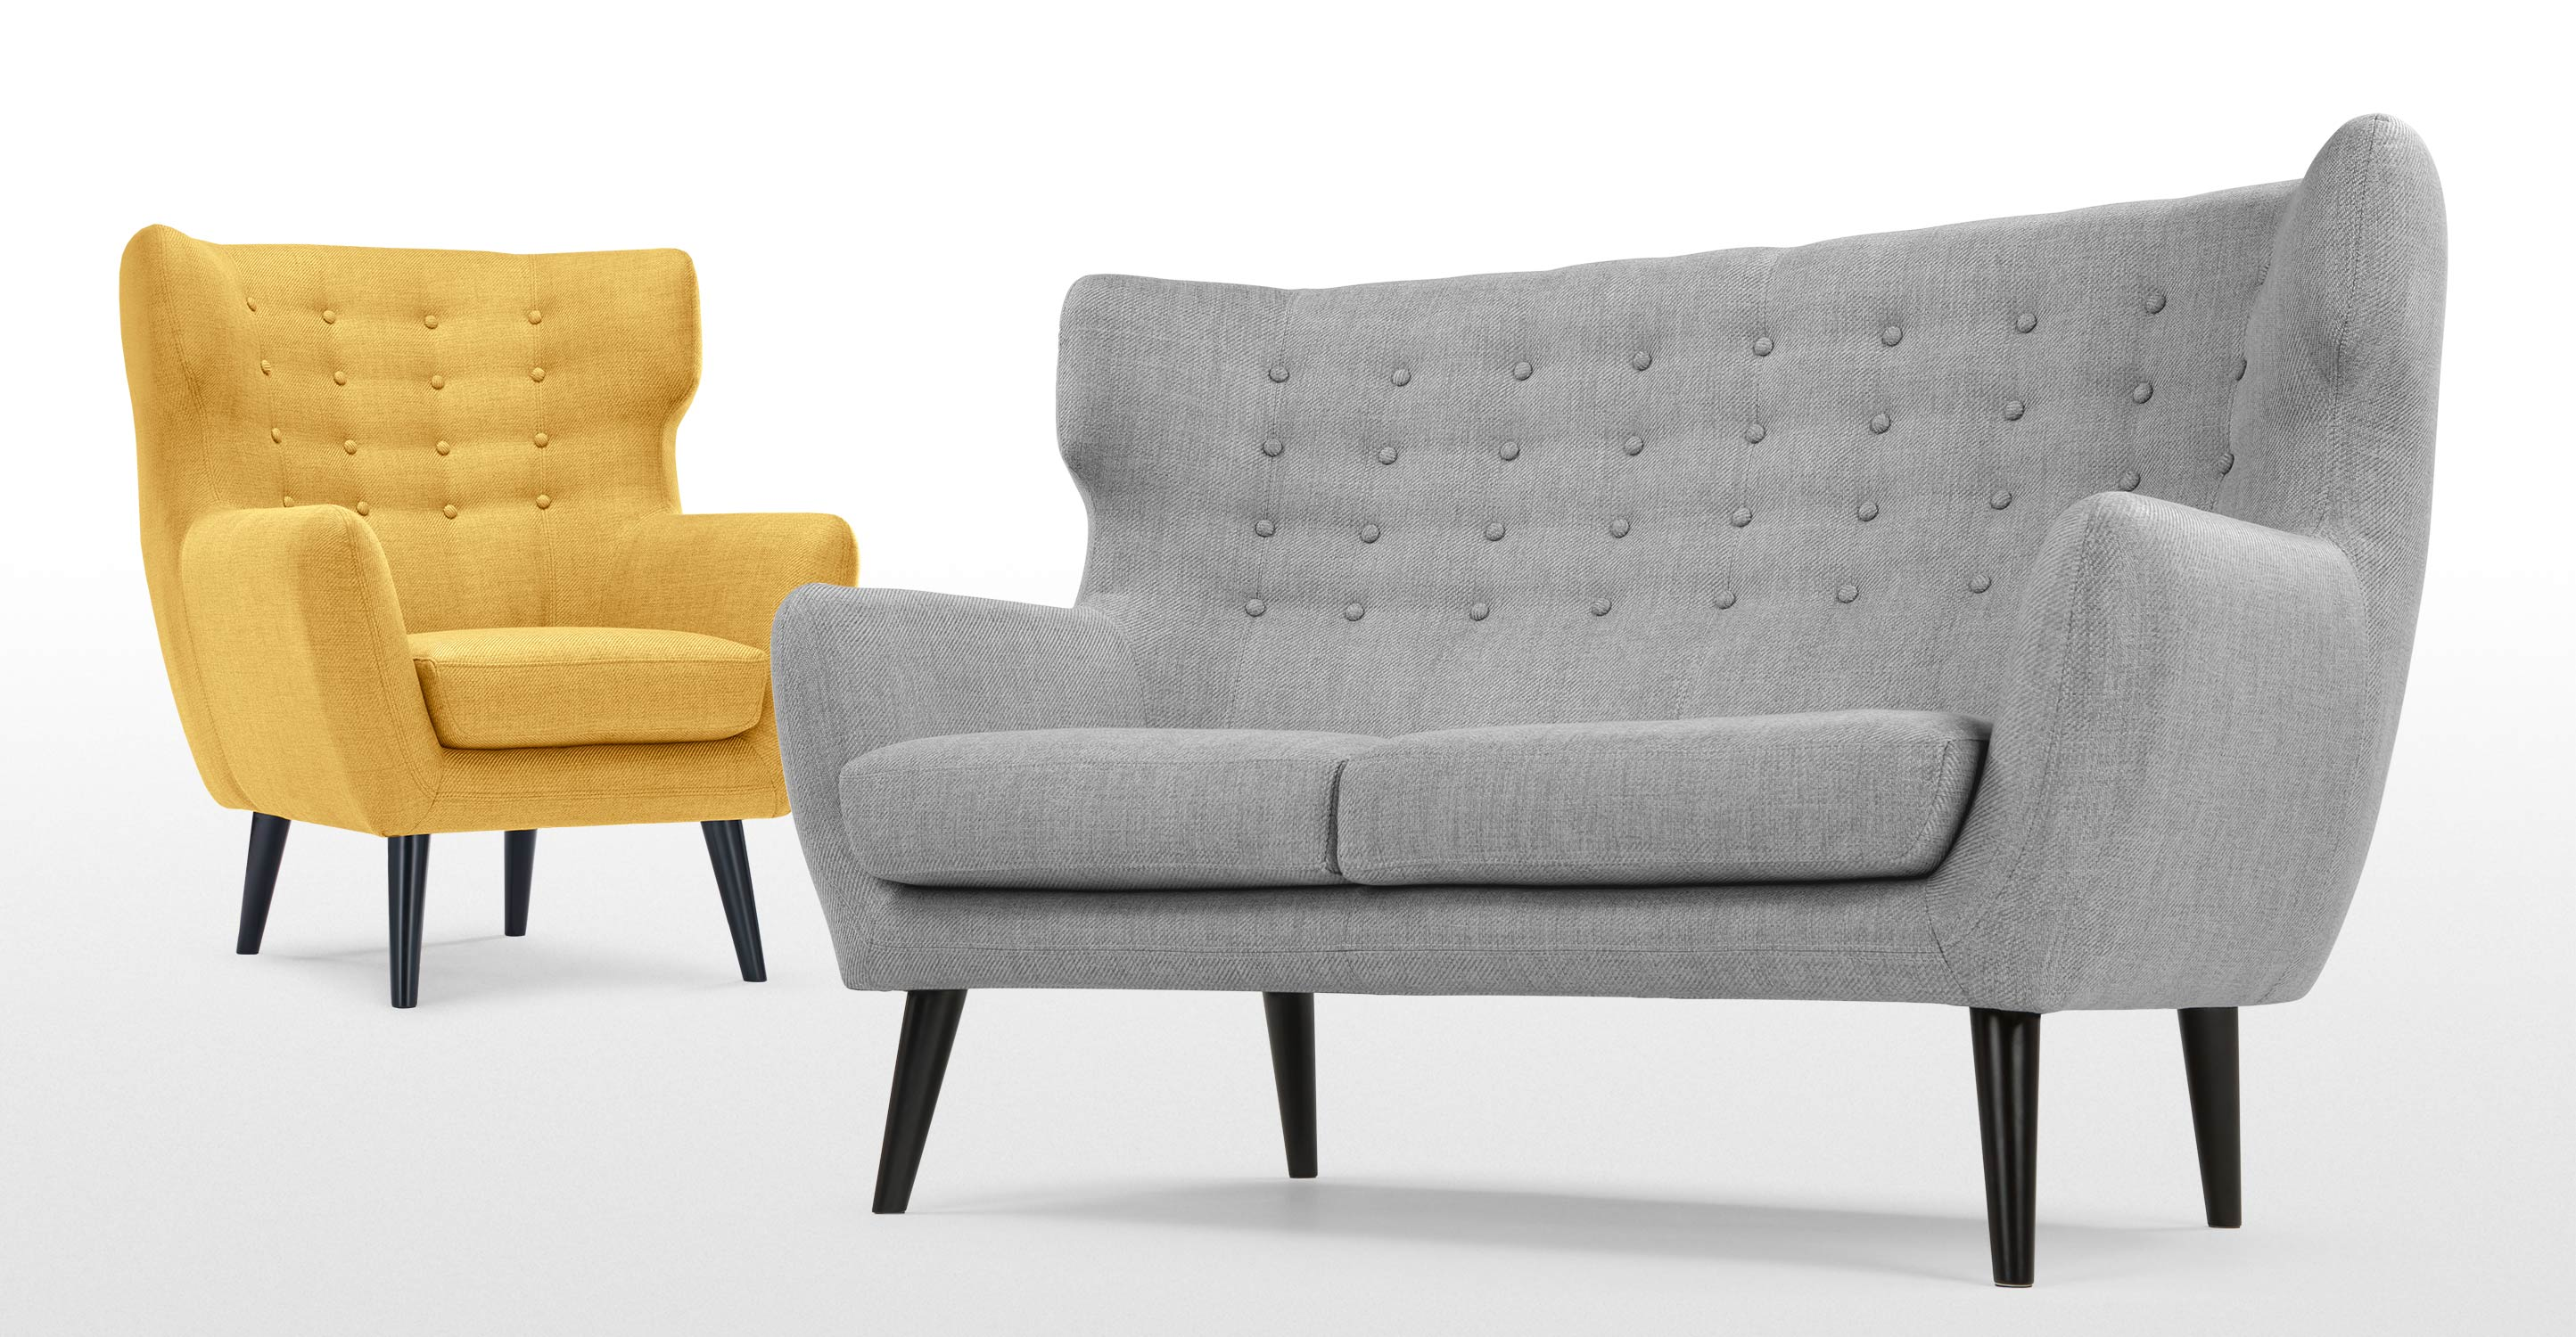 kubrick wing back chair in ochre yellow. Black Bedroom Furniture Sets. Home Design Ideas